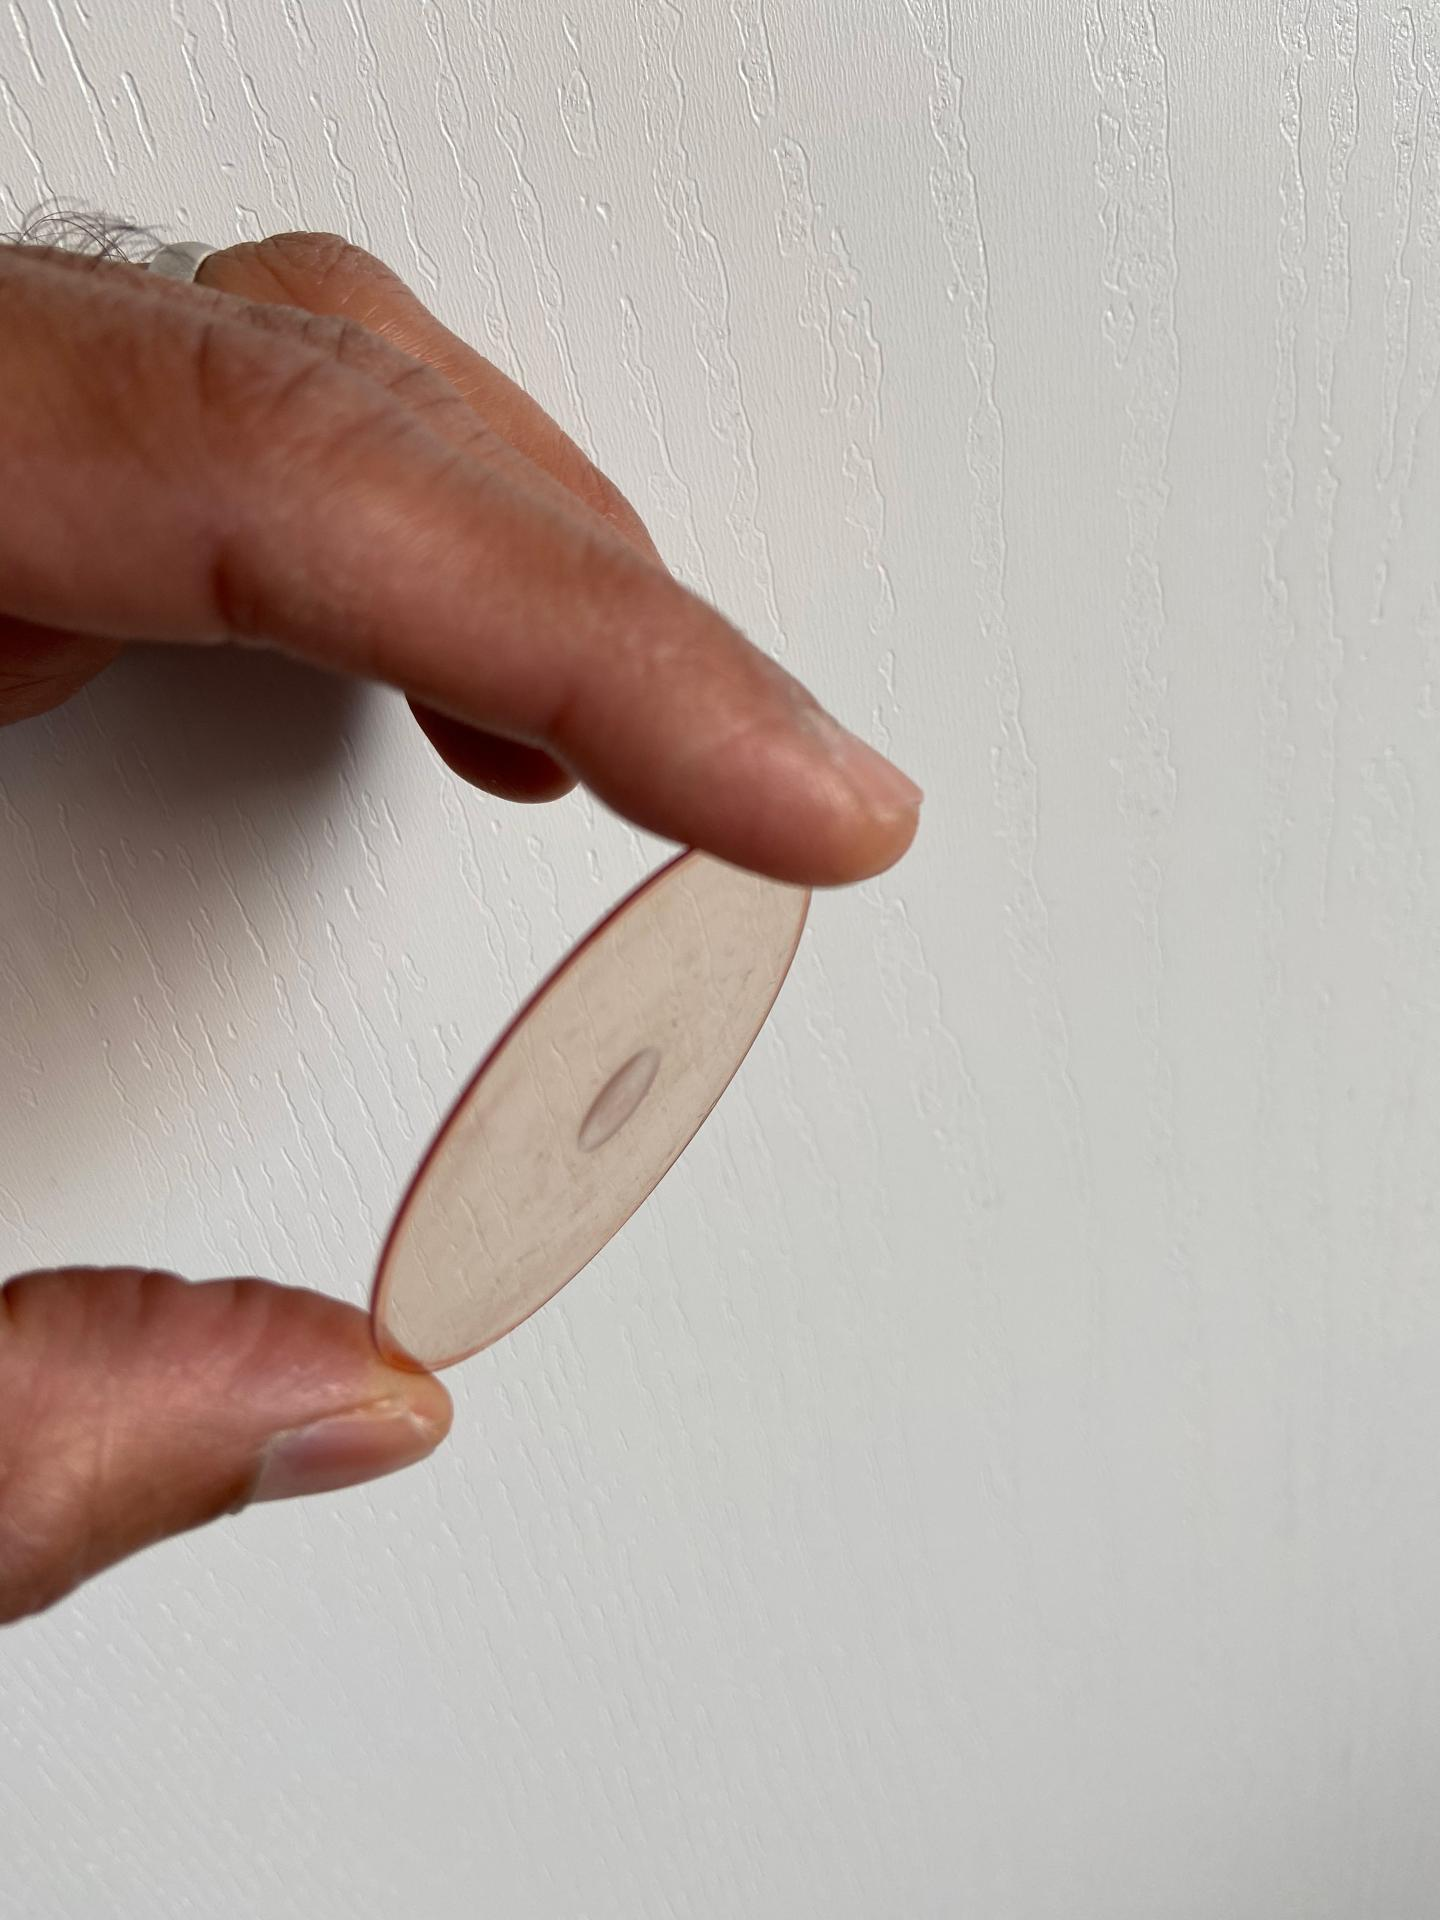 An ultra-thin camera that does not need to focus